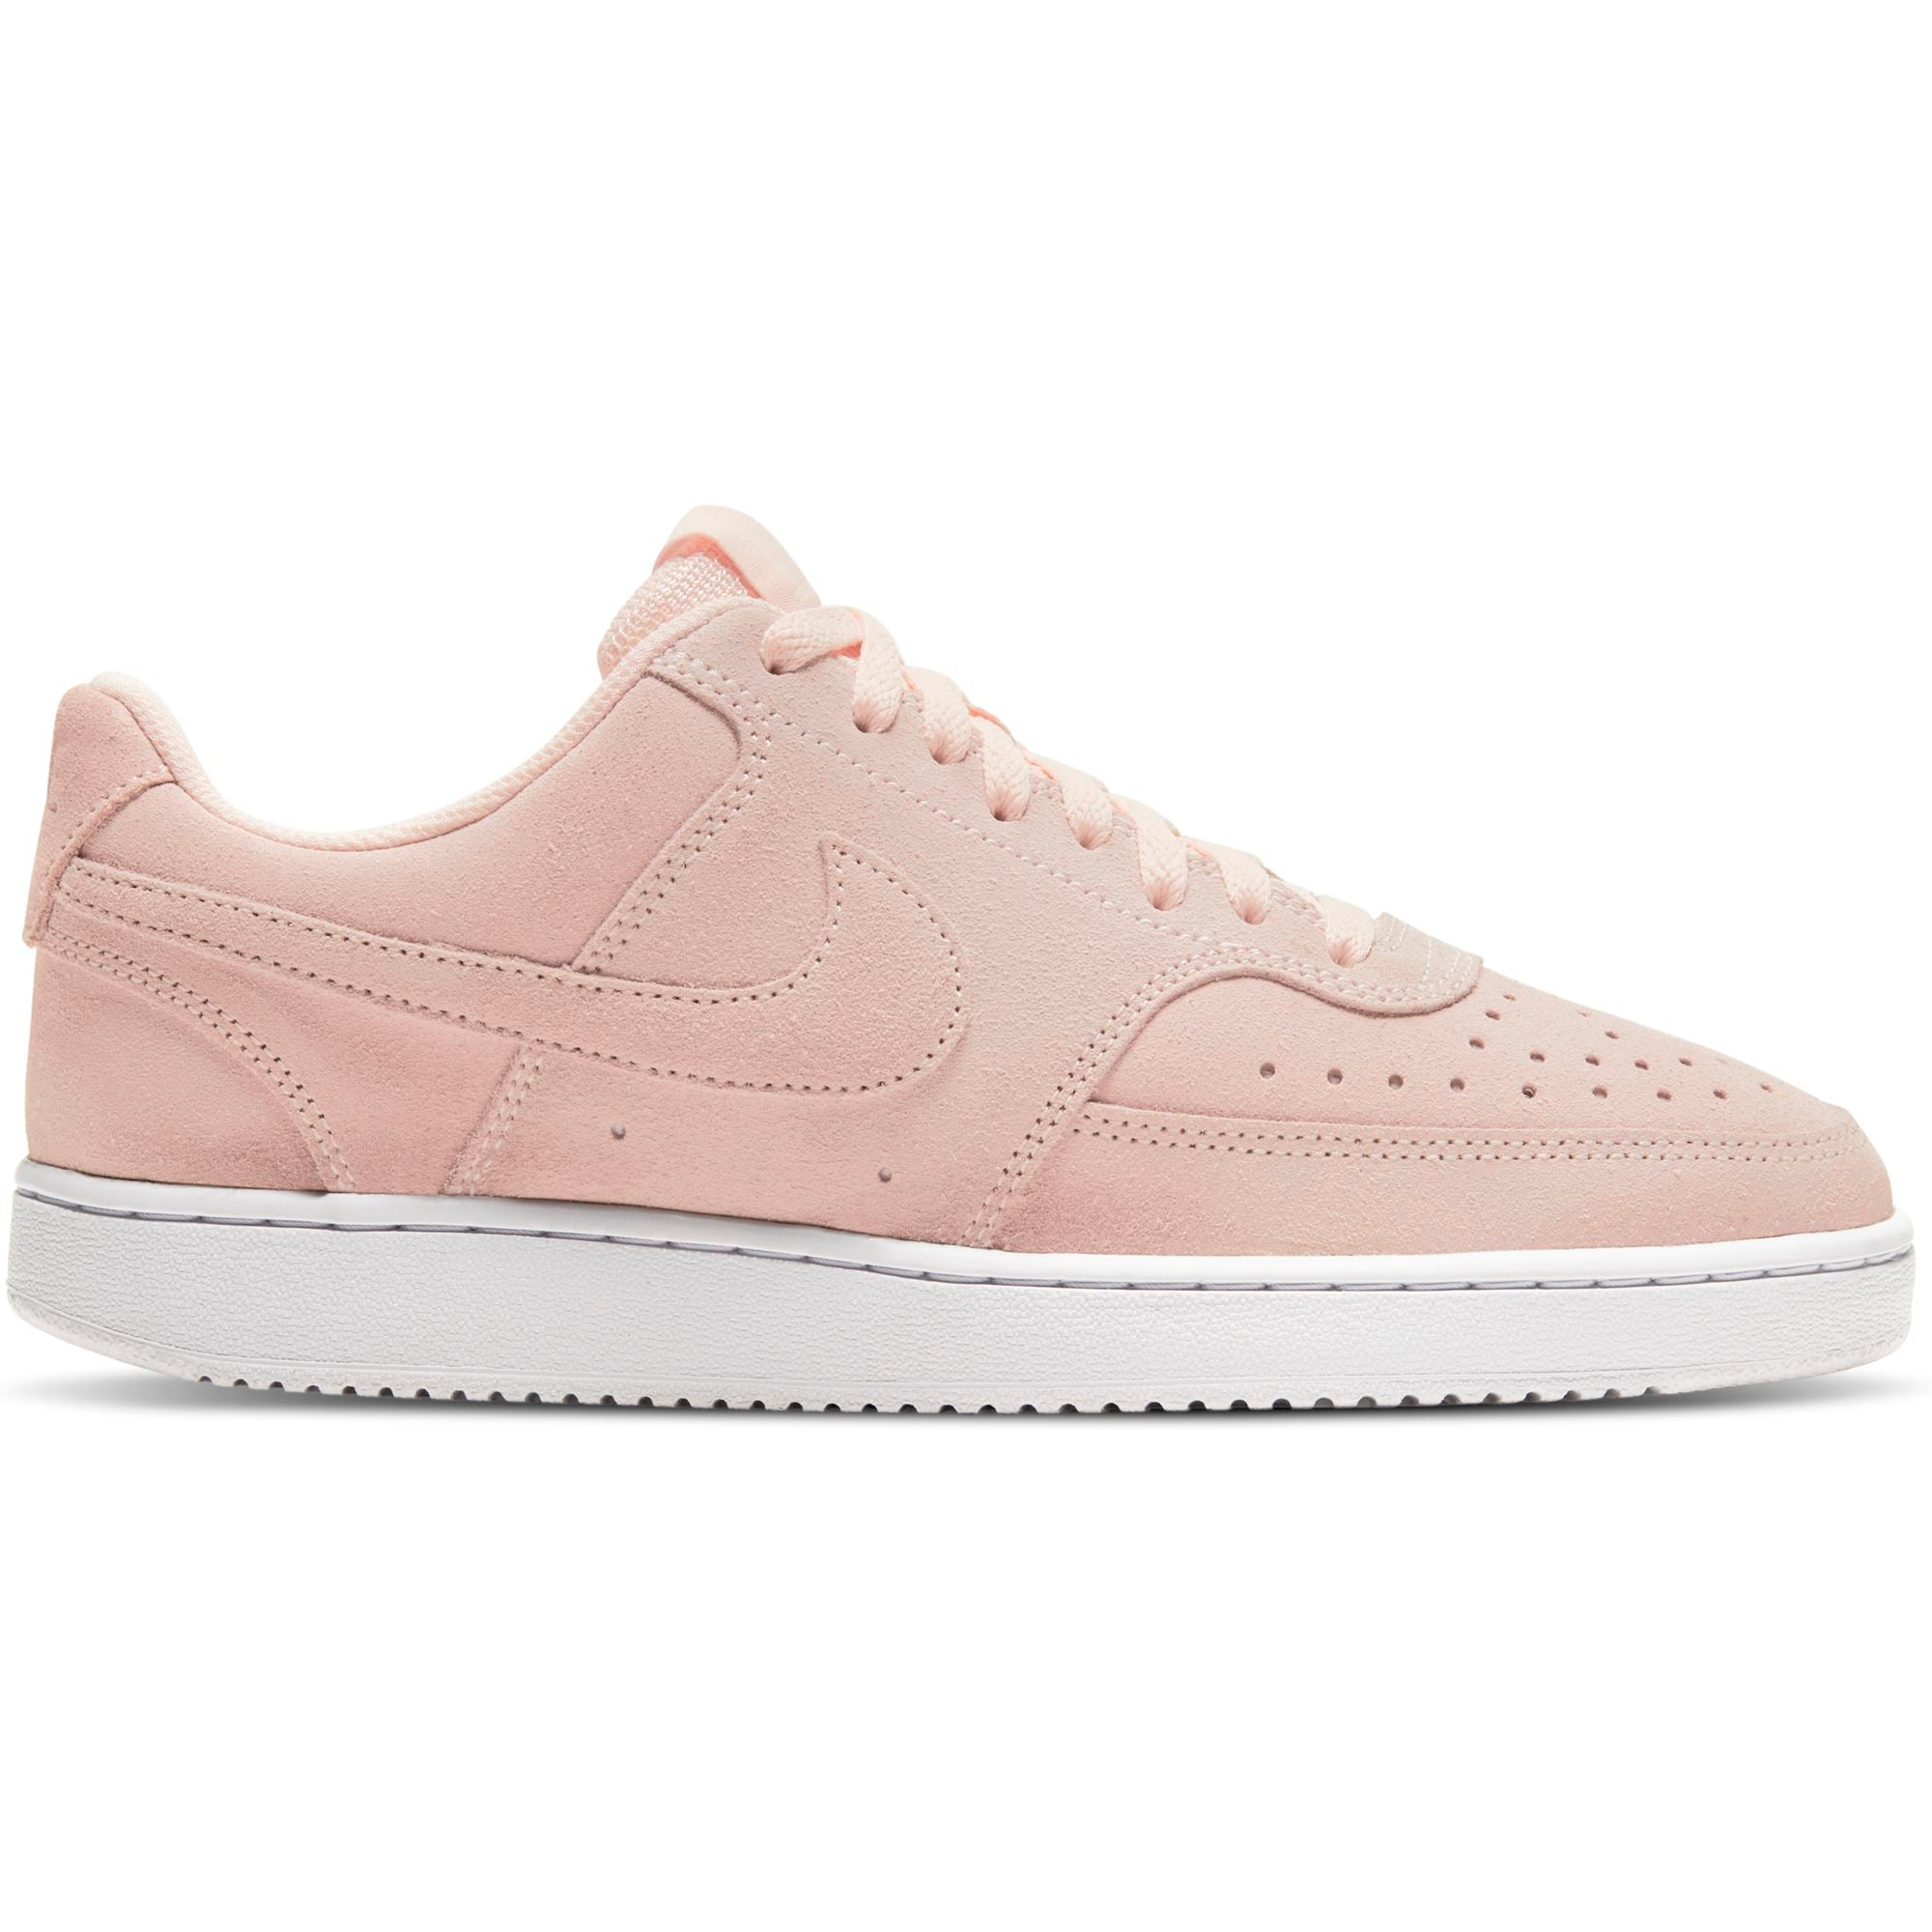 Nike Womens Court Vision Low - Orange Pearl/White SP-Footwear-Womens Nike